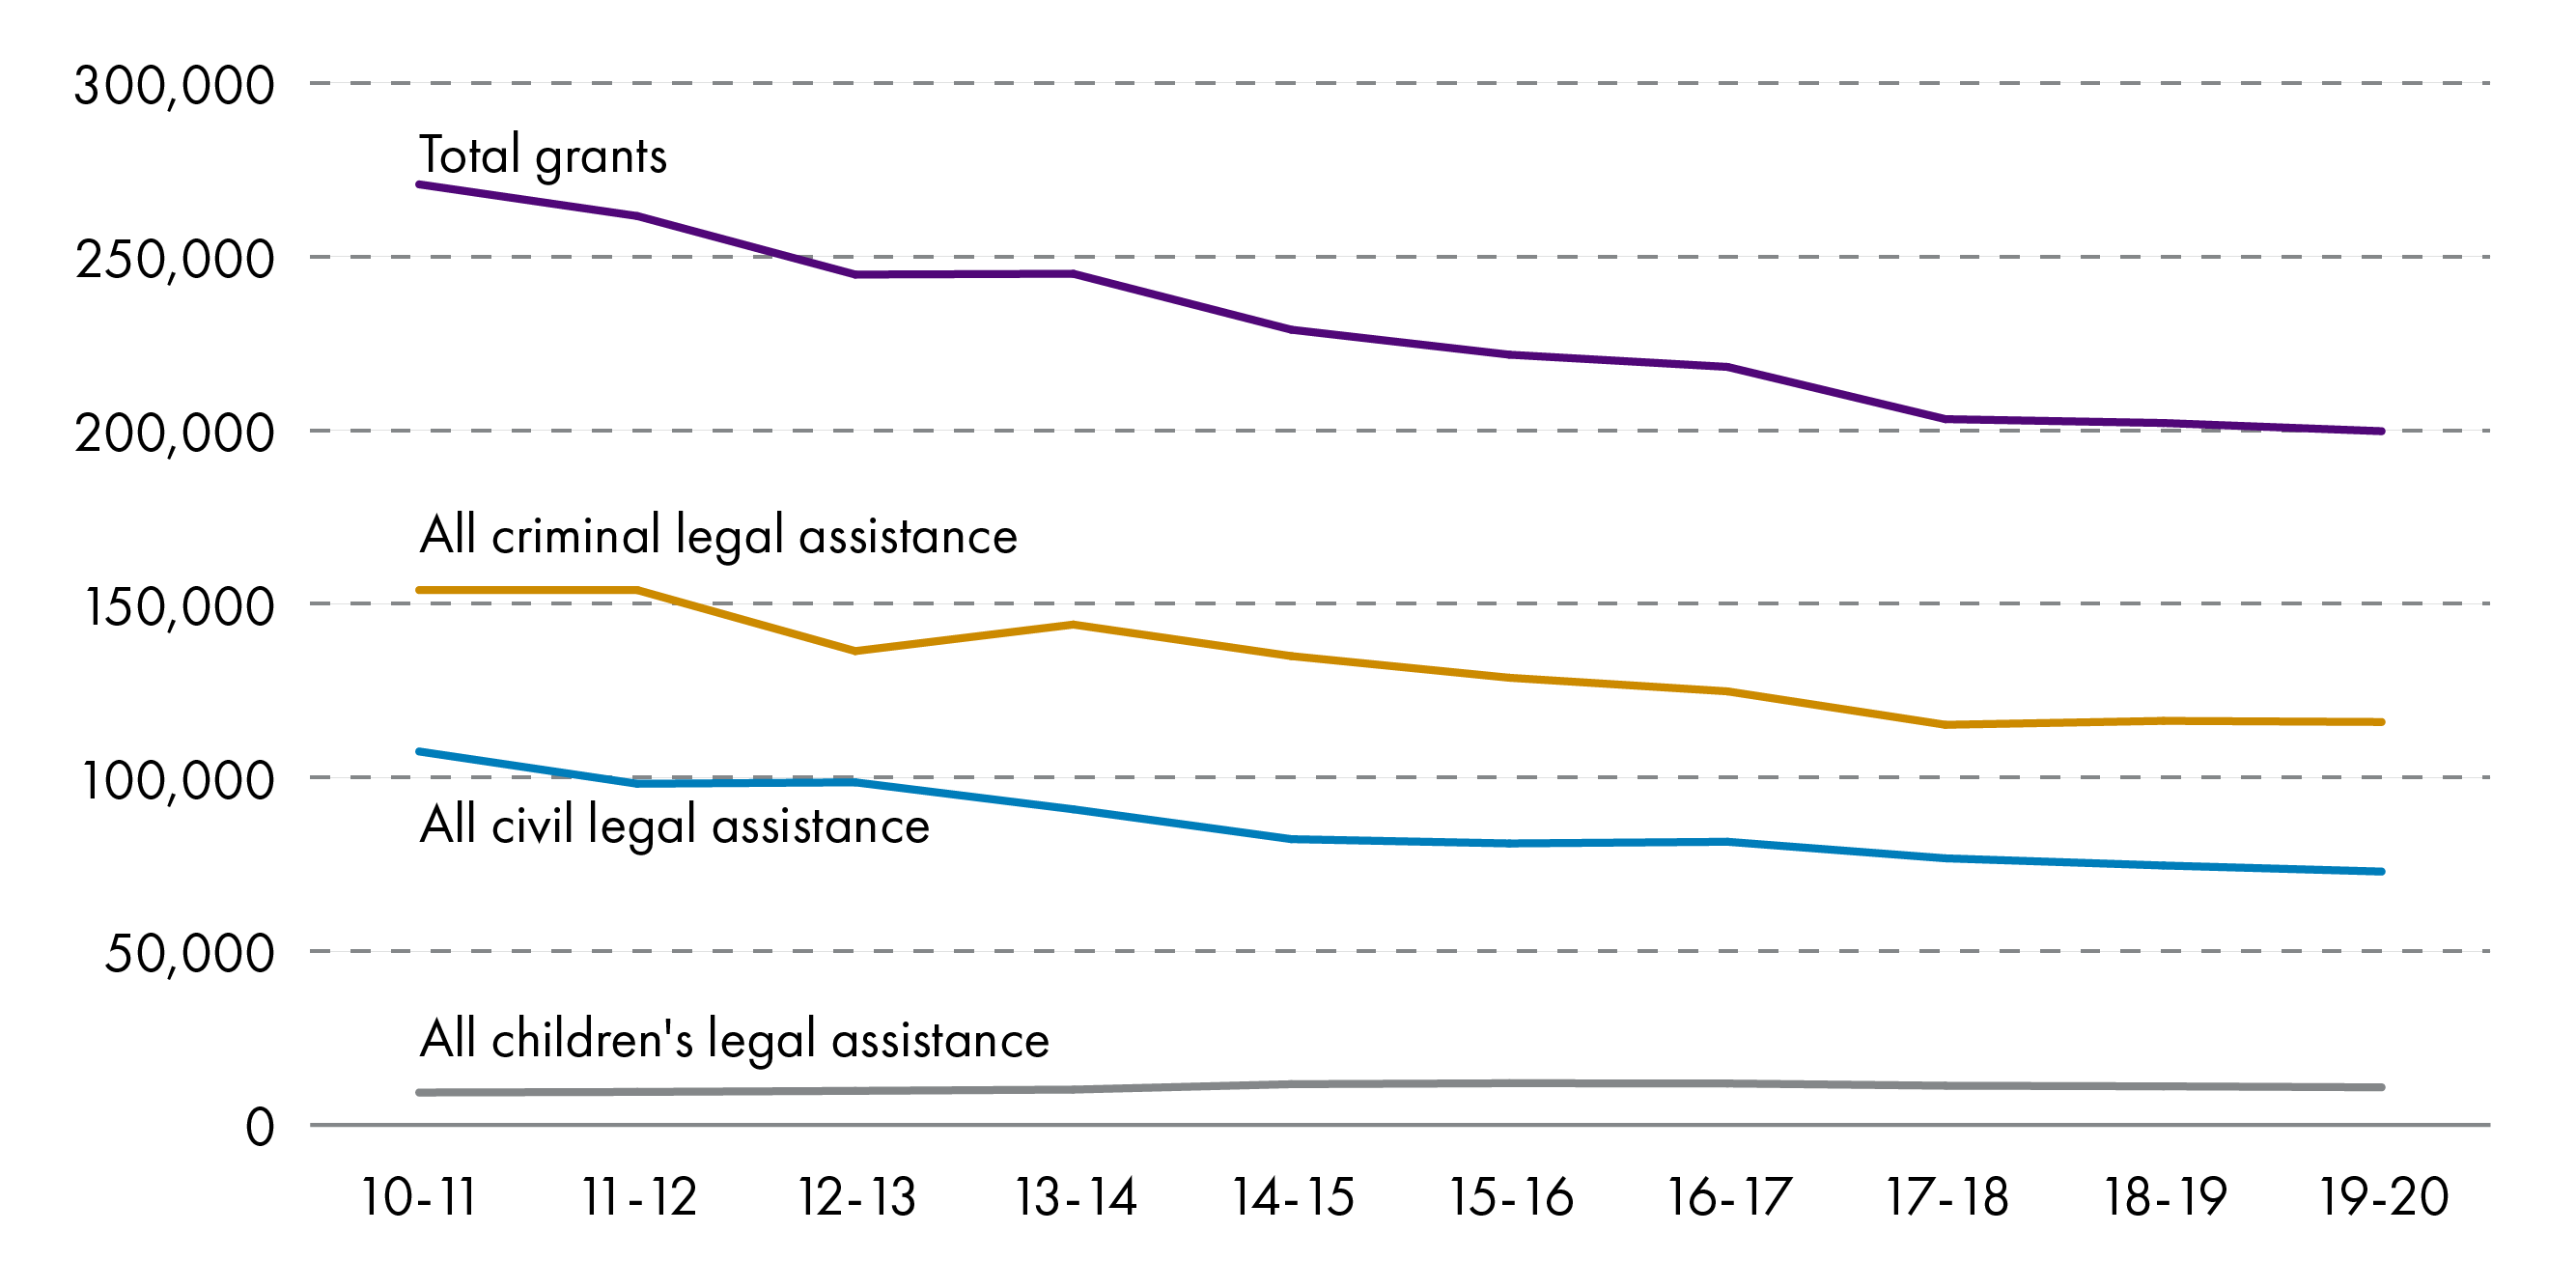 The number of legal aid applications granted between 2010-11 and 2019-20 has shown a broadly downwards trend.